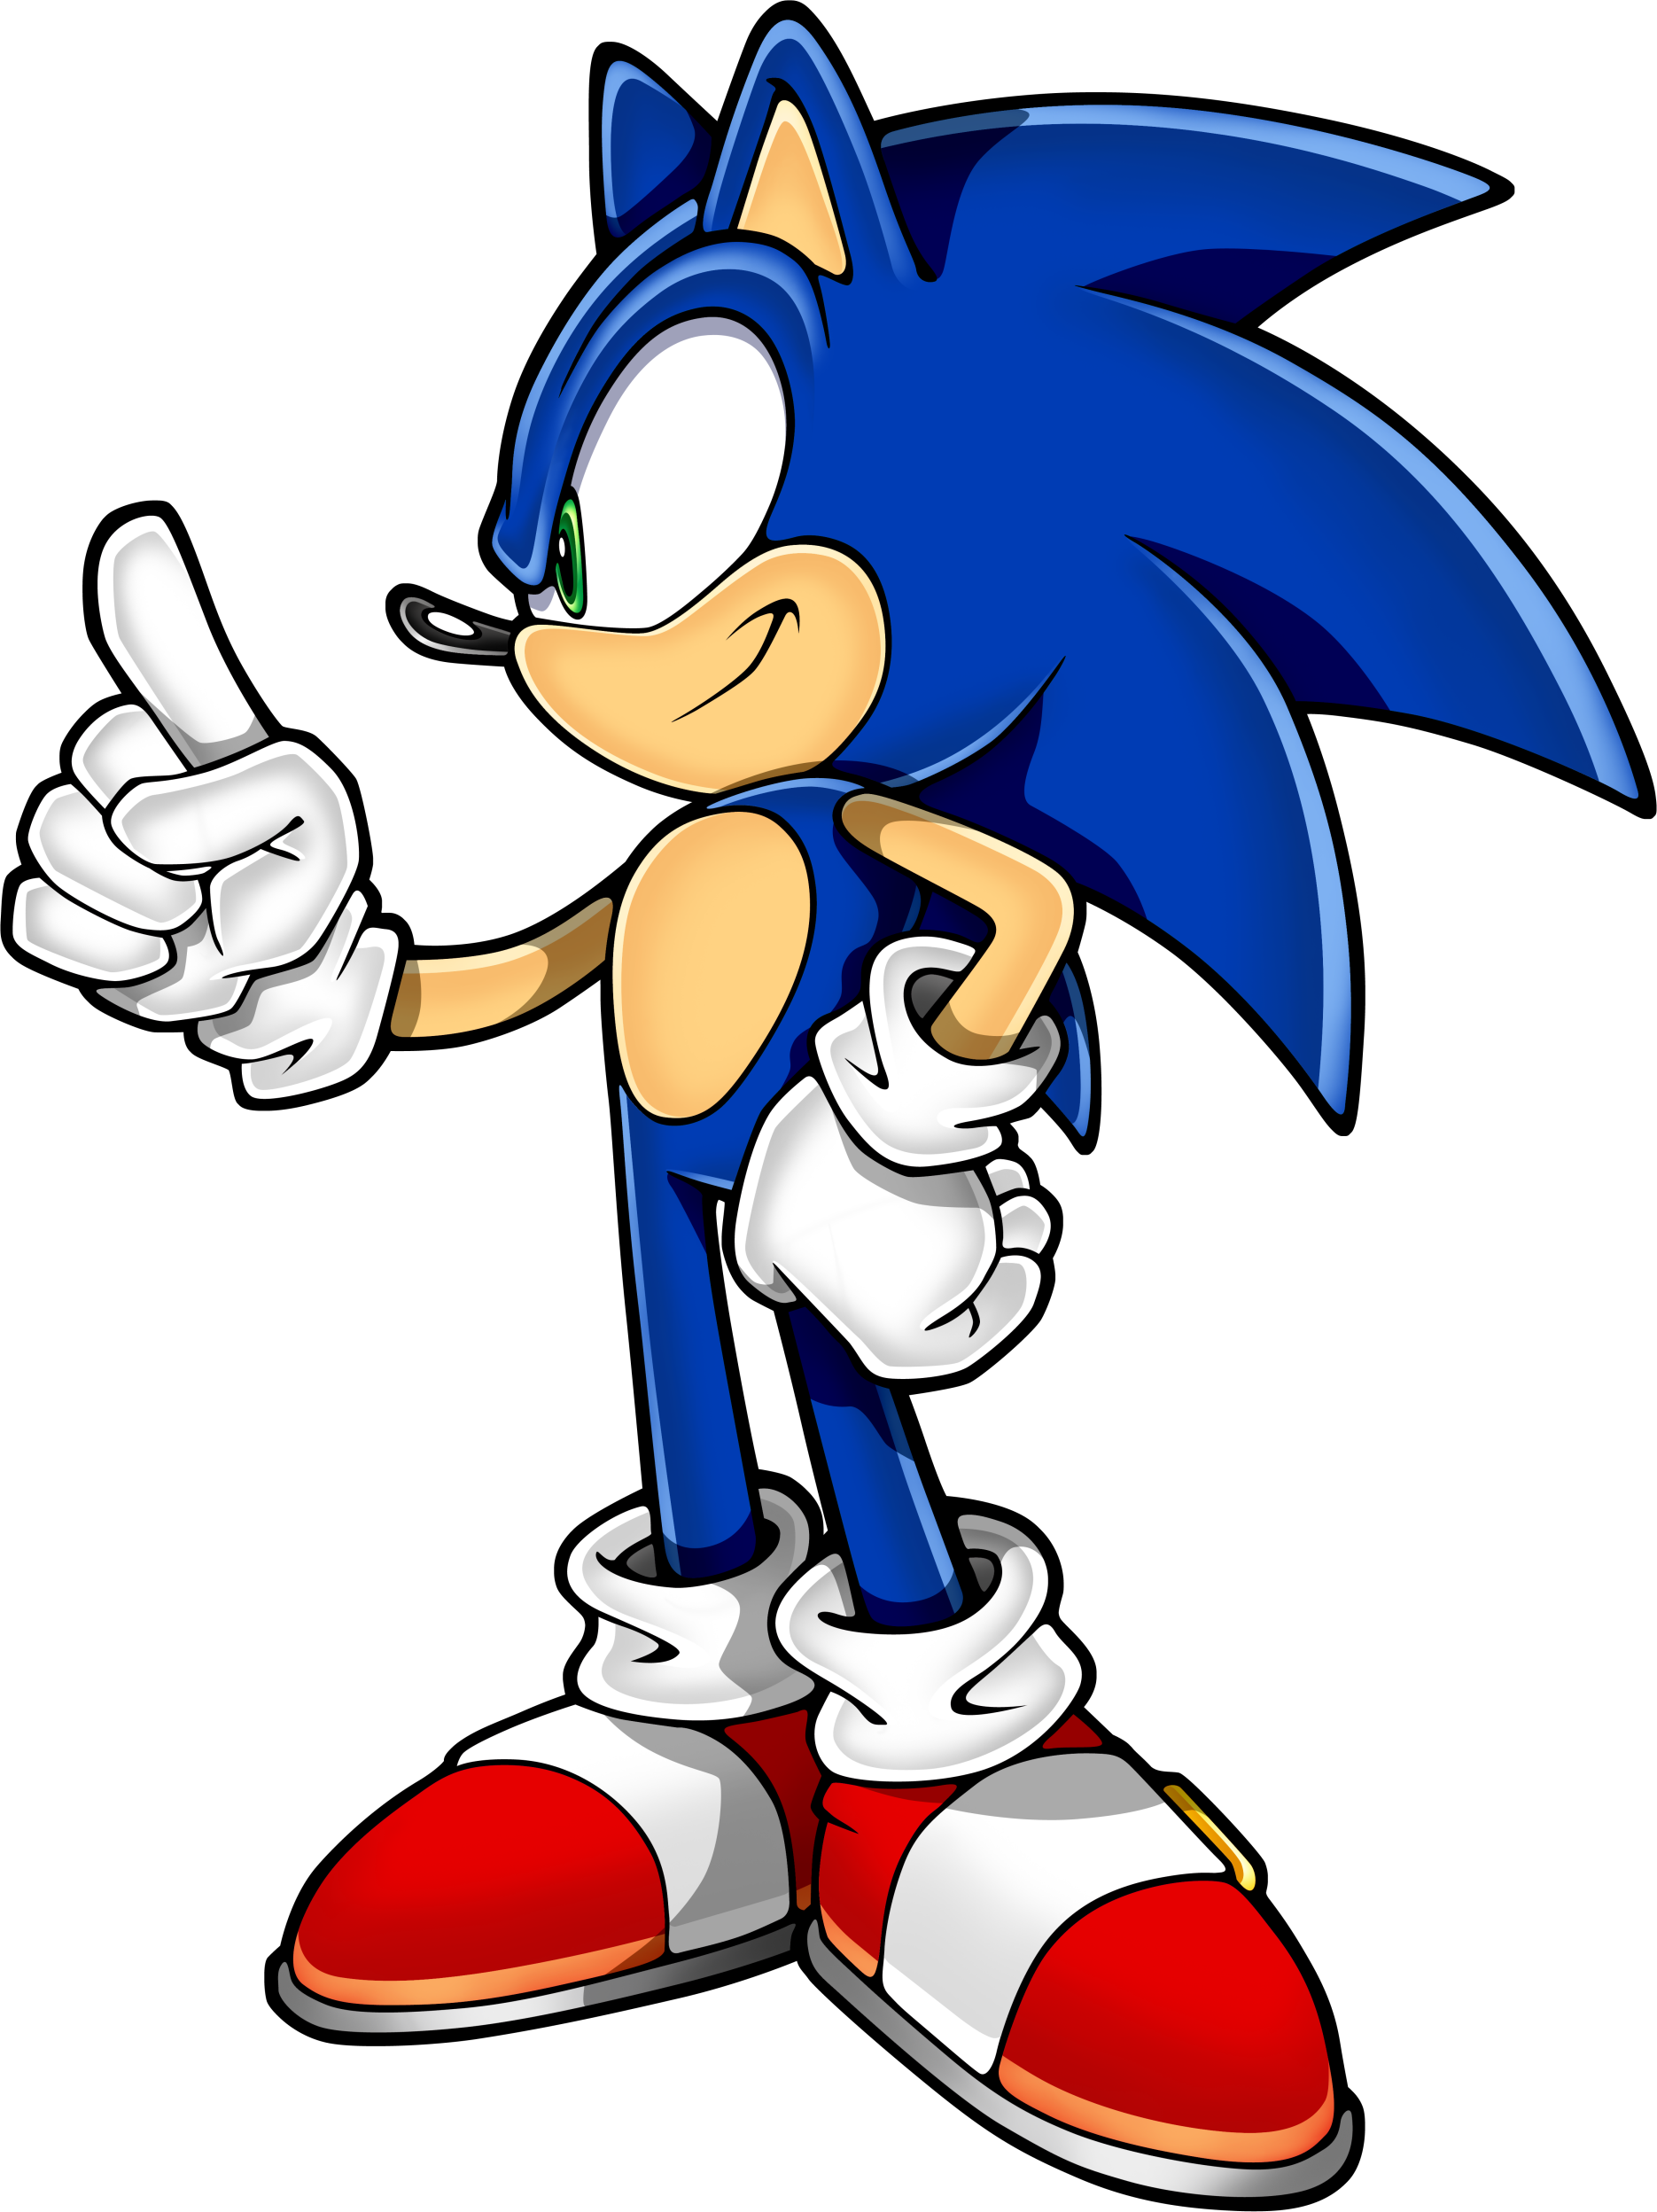 Sonic Art Assets DVD - Sonic The Hedgehog - 13.png - Sonic The Hedgehog PNG